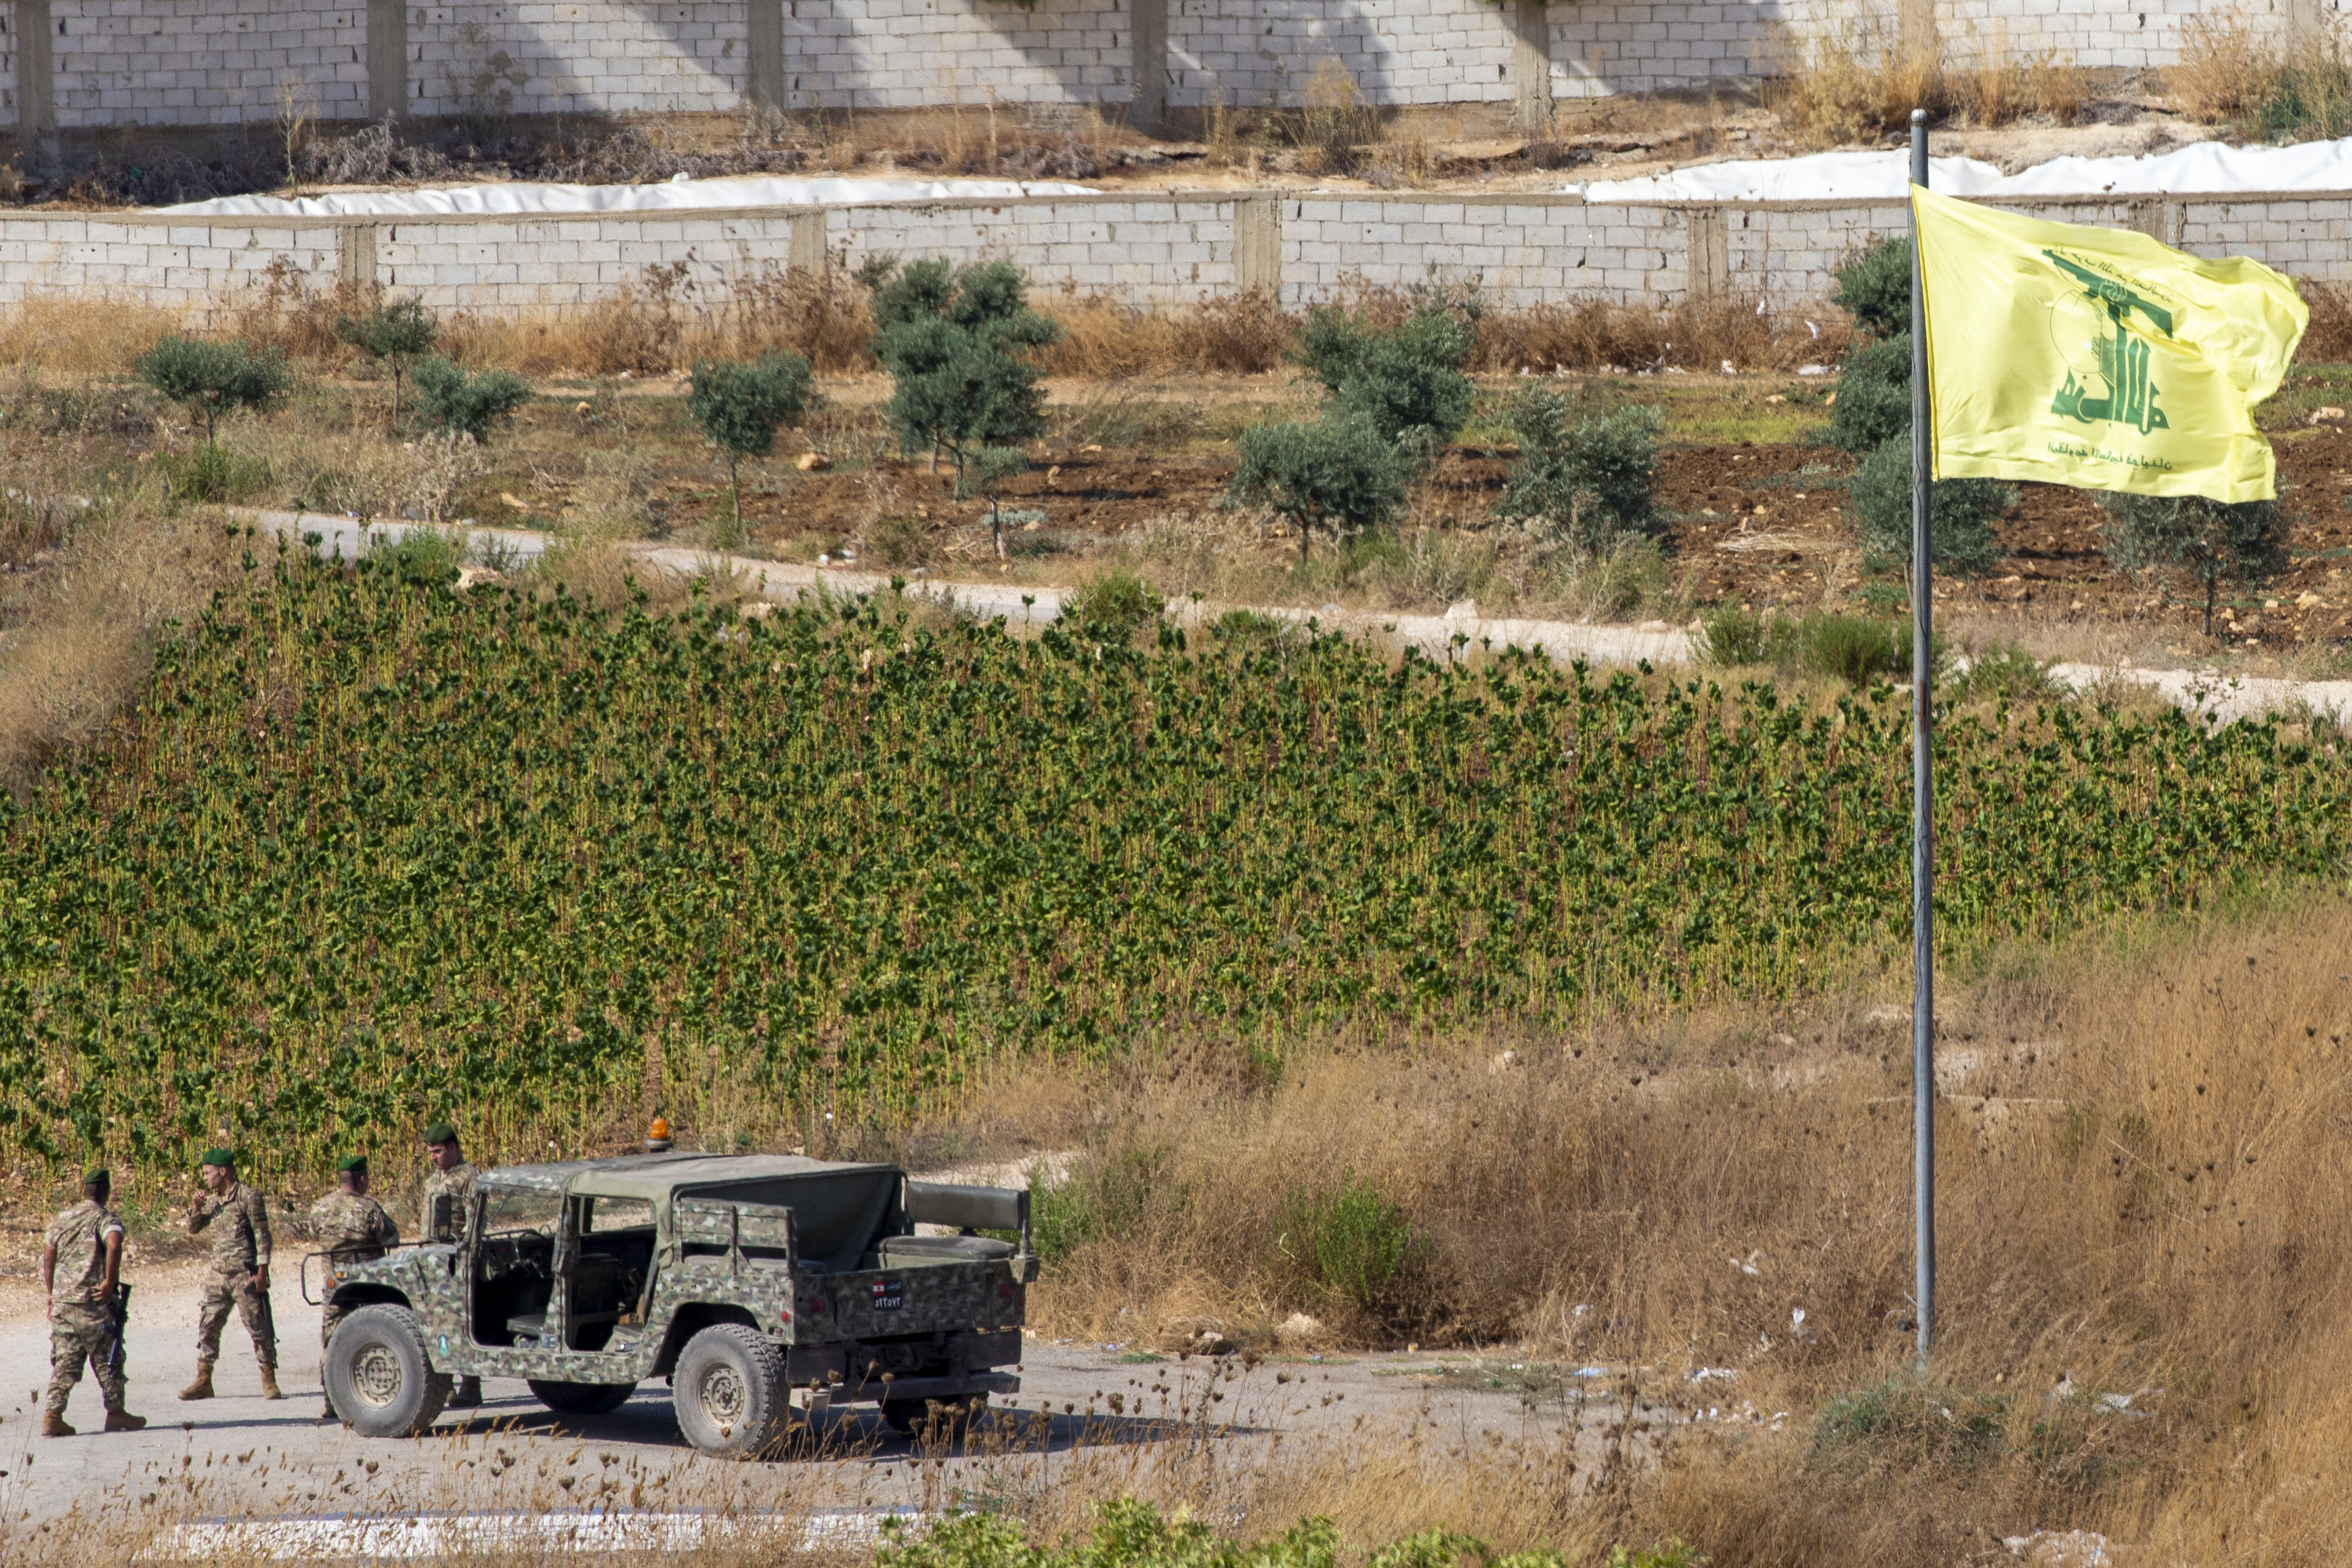 The Latest: Lebanese army fires at 2 Israeli drones